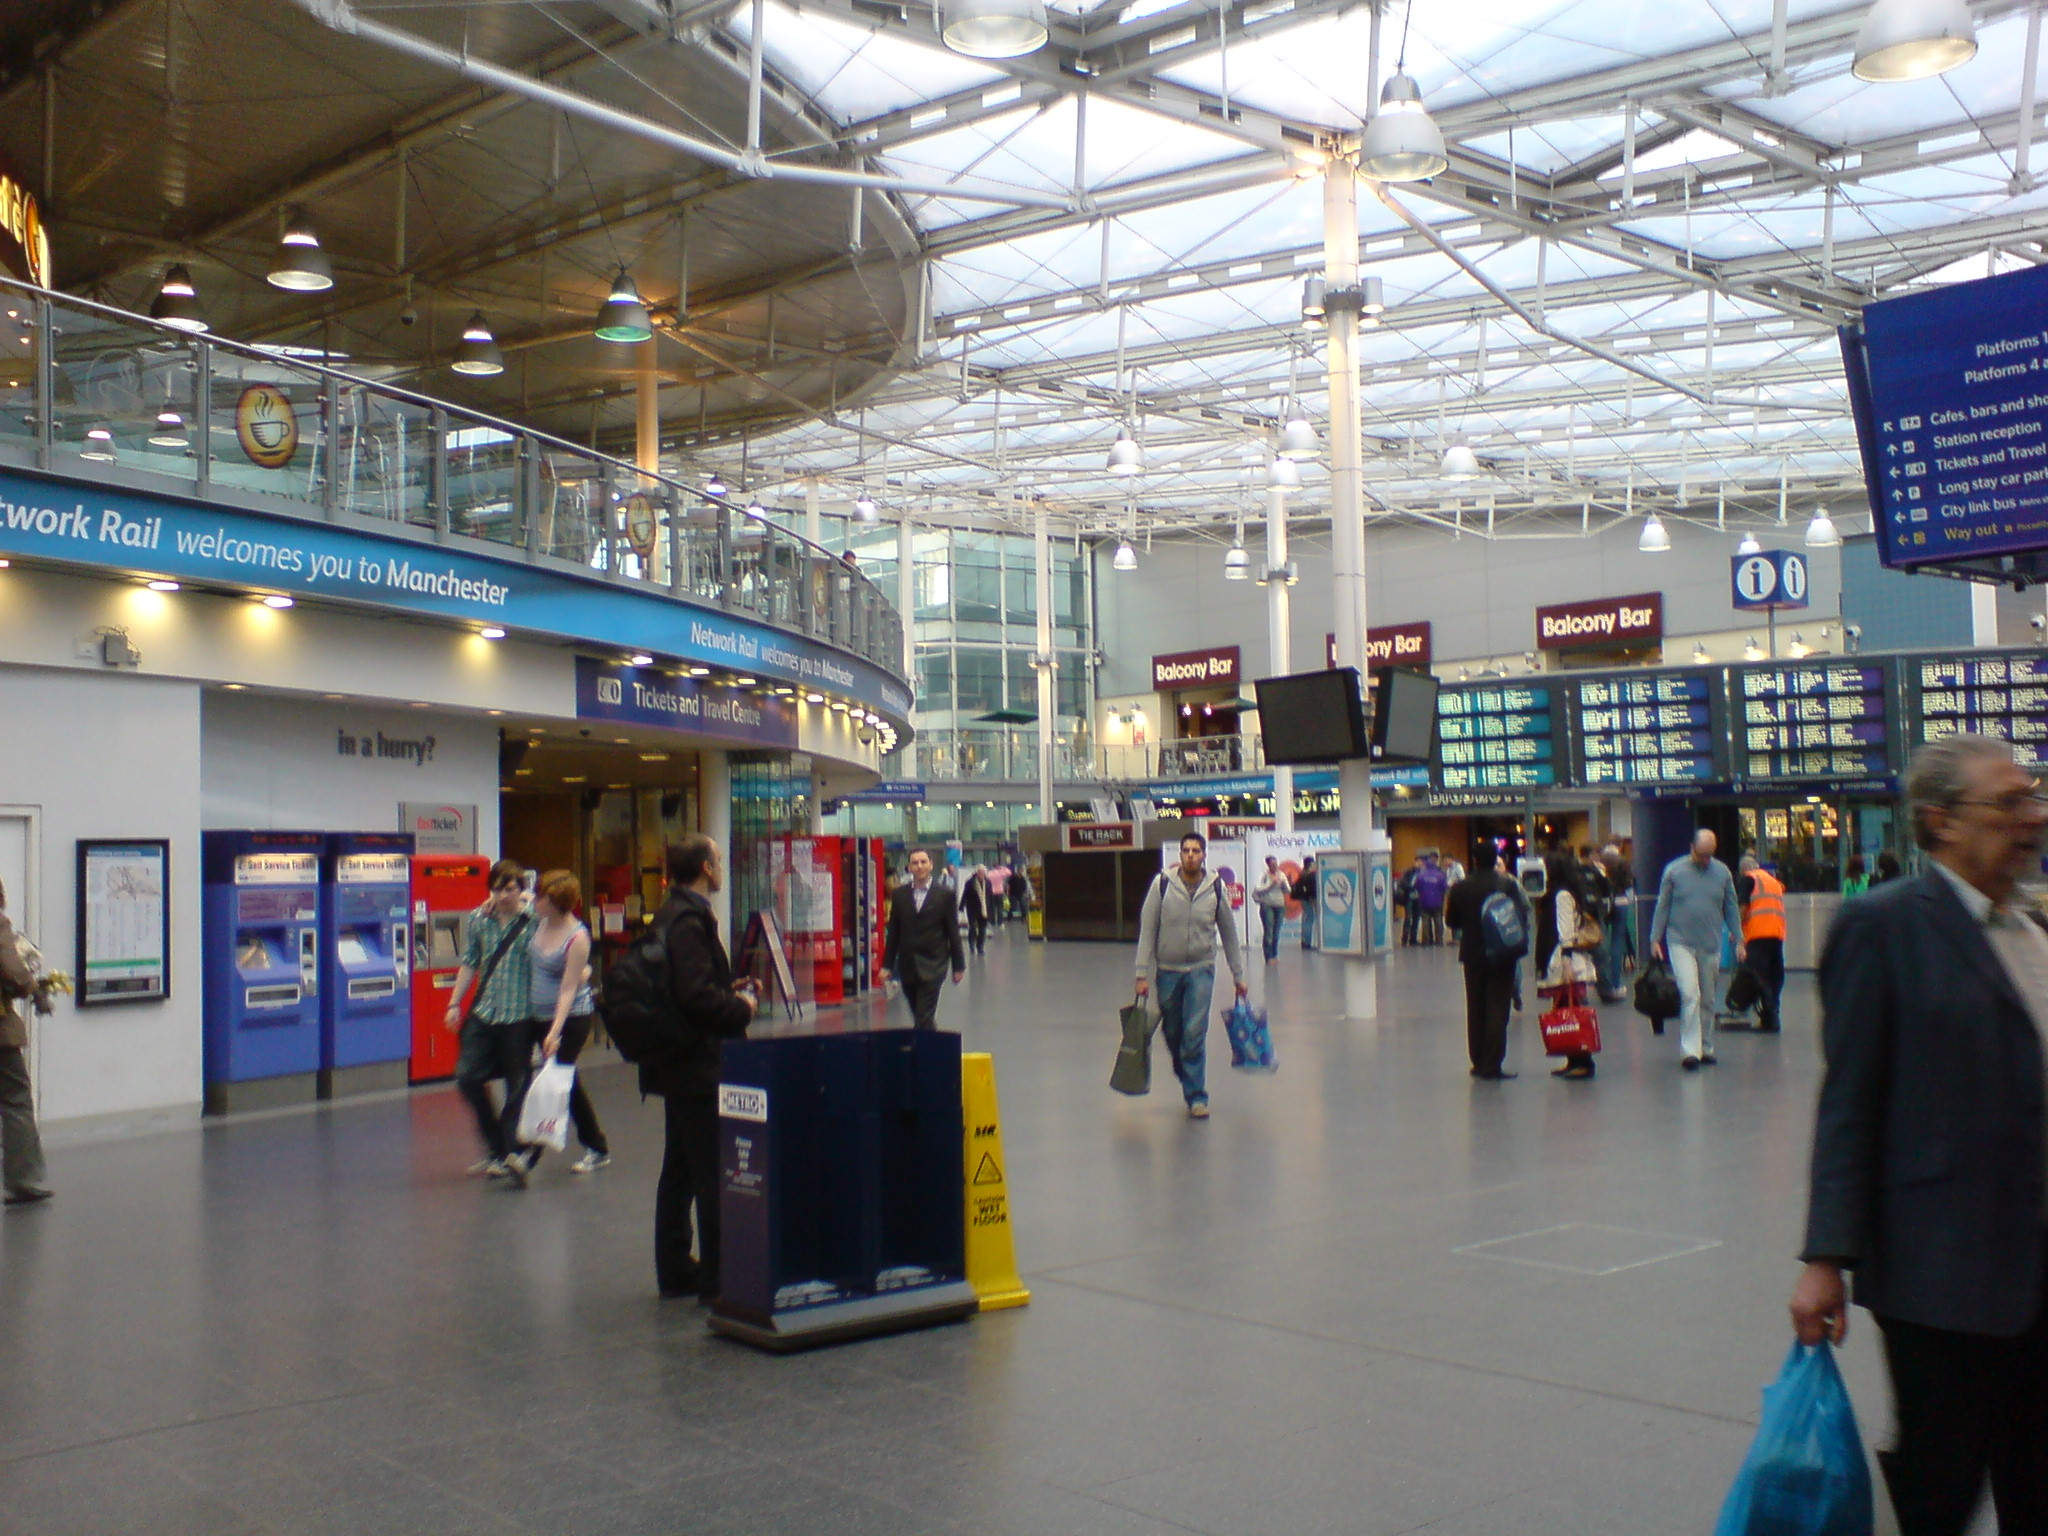 FileManchester Piccadilly station interiorJPG Wikimedia Commons